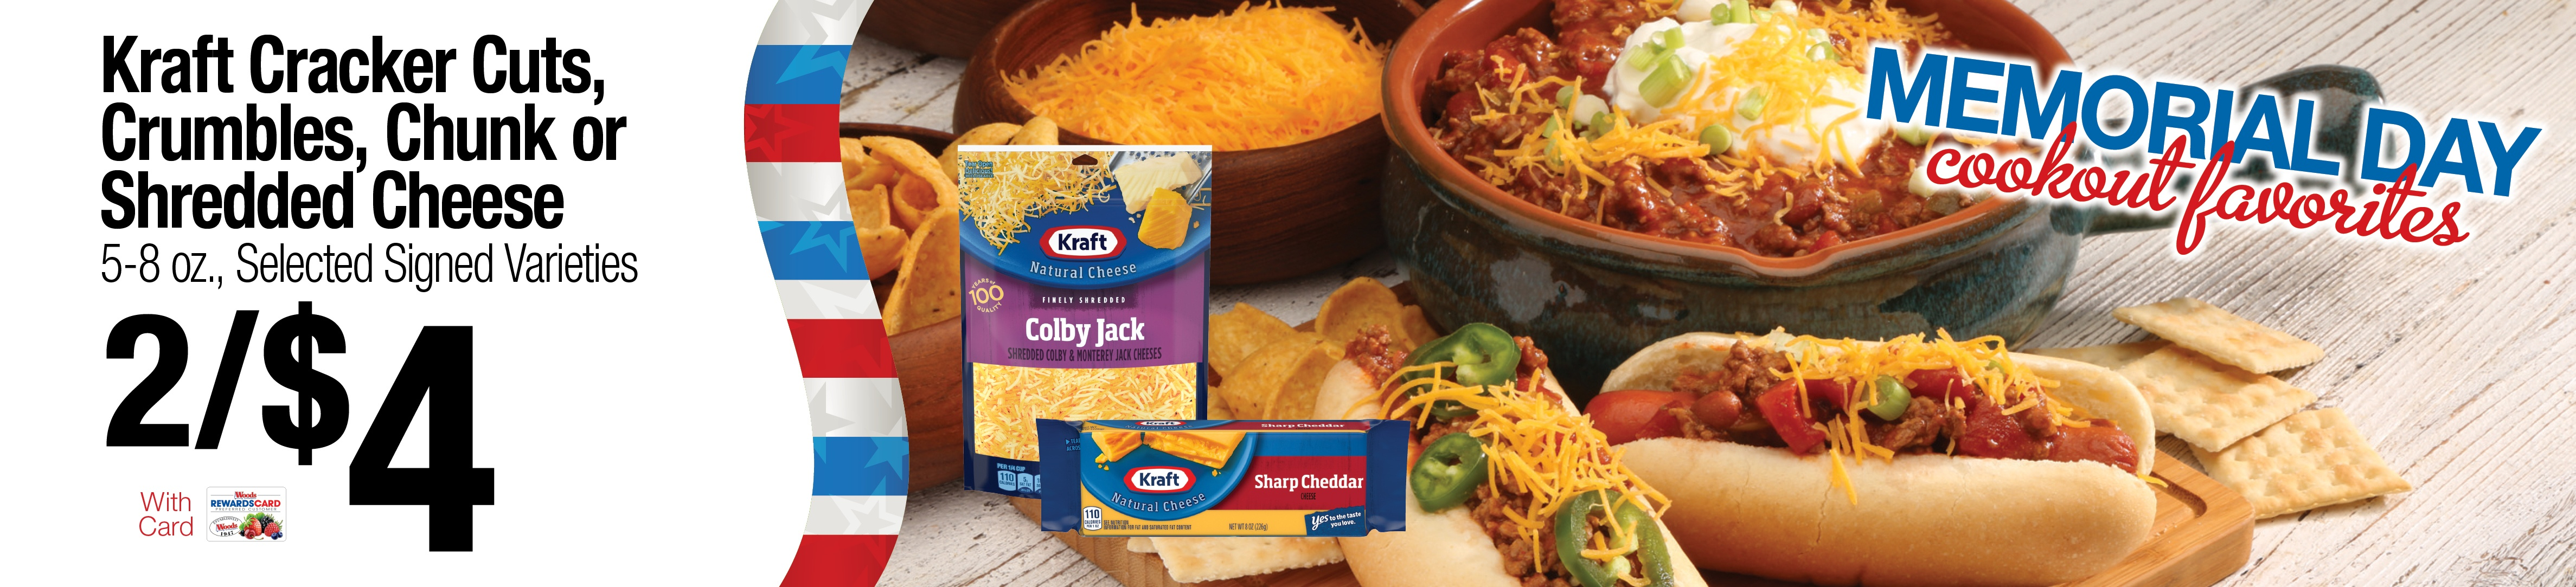 Kraft Cracker cuts, Crumbles, Chunk or Shredded Cheese 2/$4